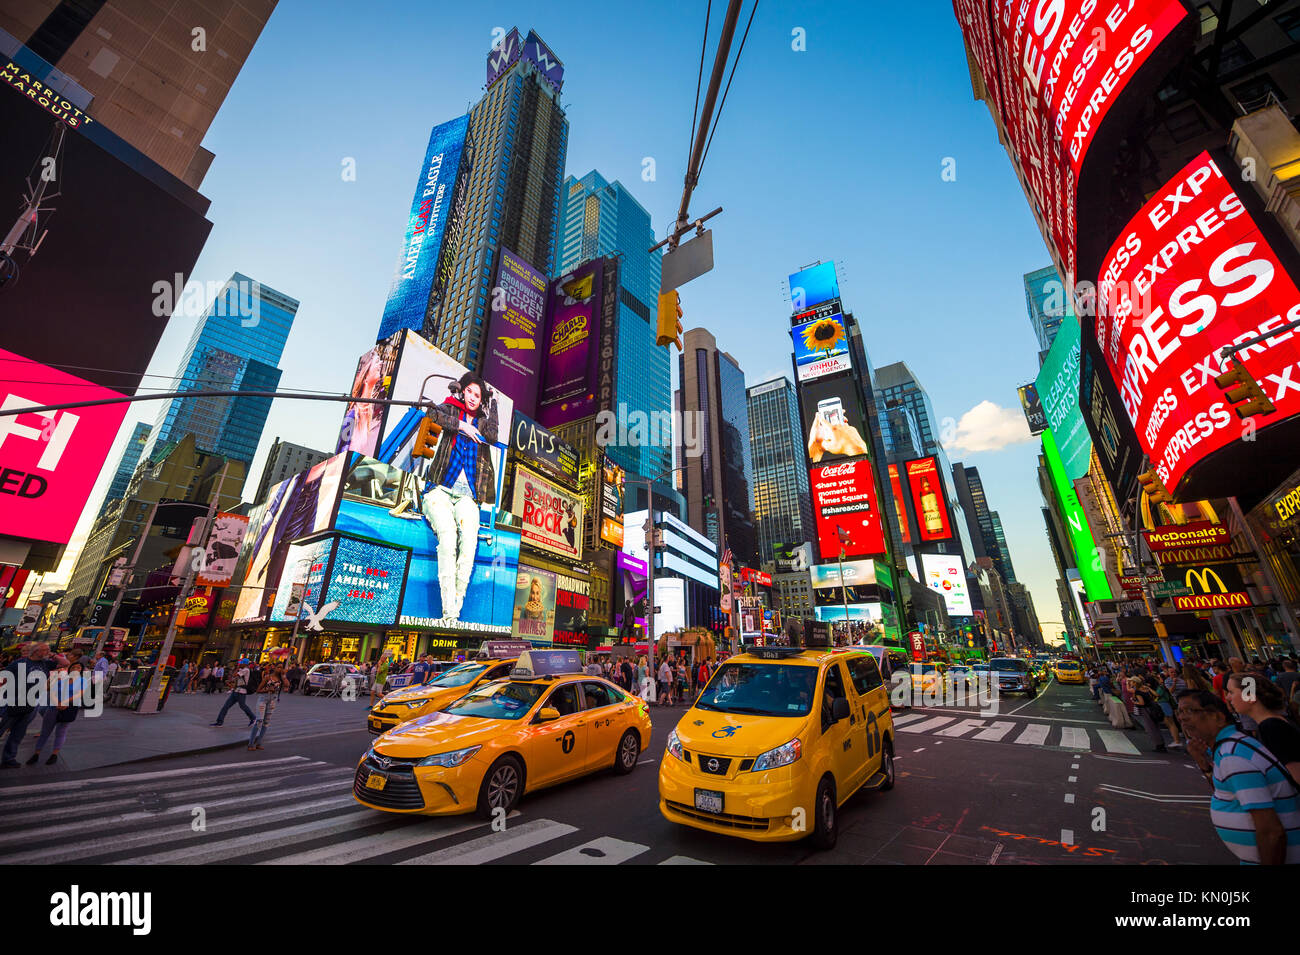 NEW YORK CITY - AUGUST 23, 2017: Bright neon signage flashes over crowds and taxi traffic zooming past Times Square, - Stock Image